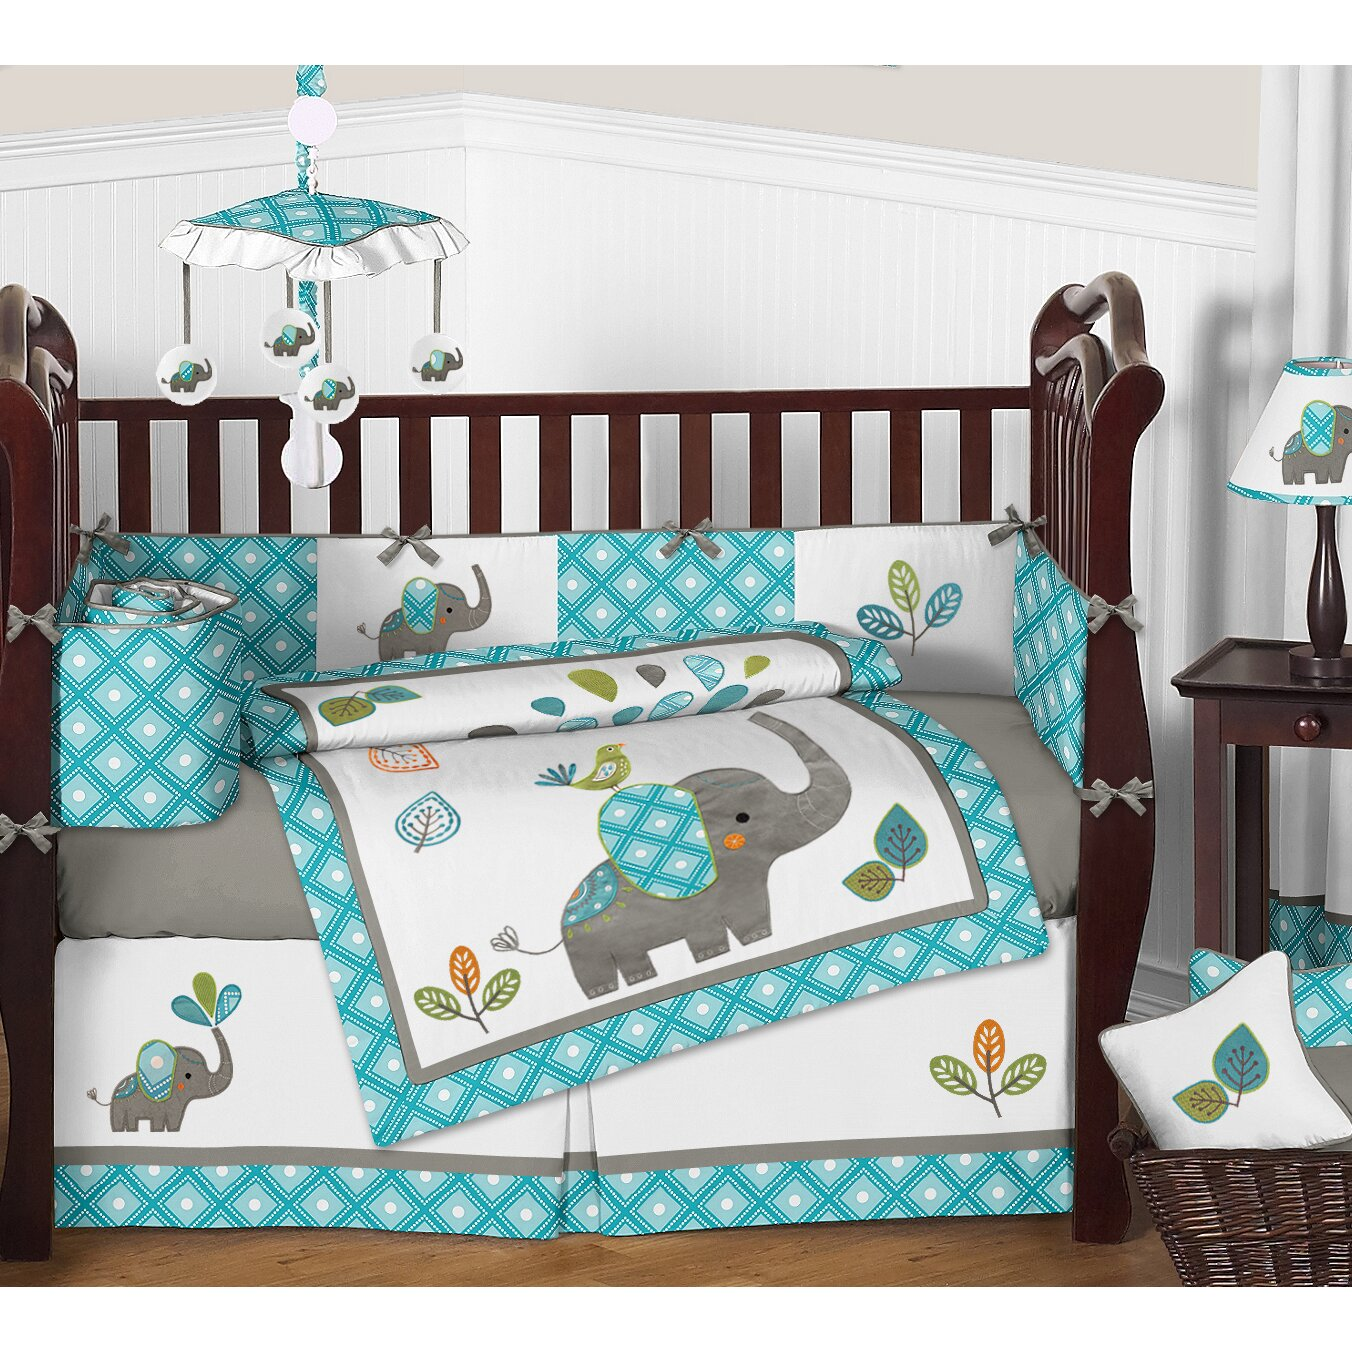 Image Result For Piece Girl Crib Bedding Sets